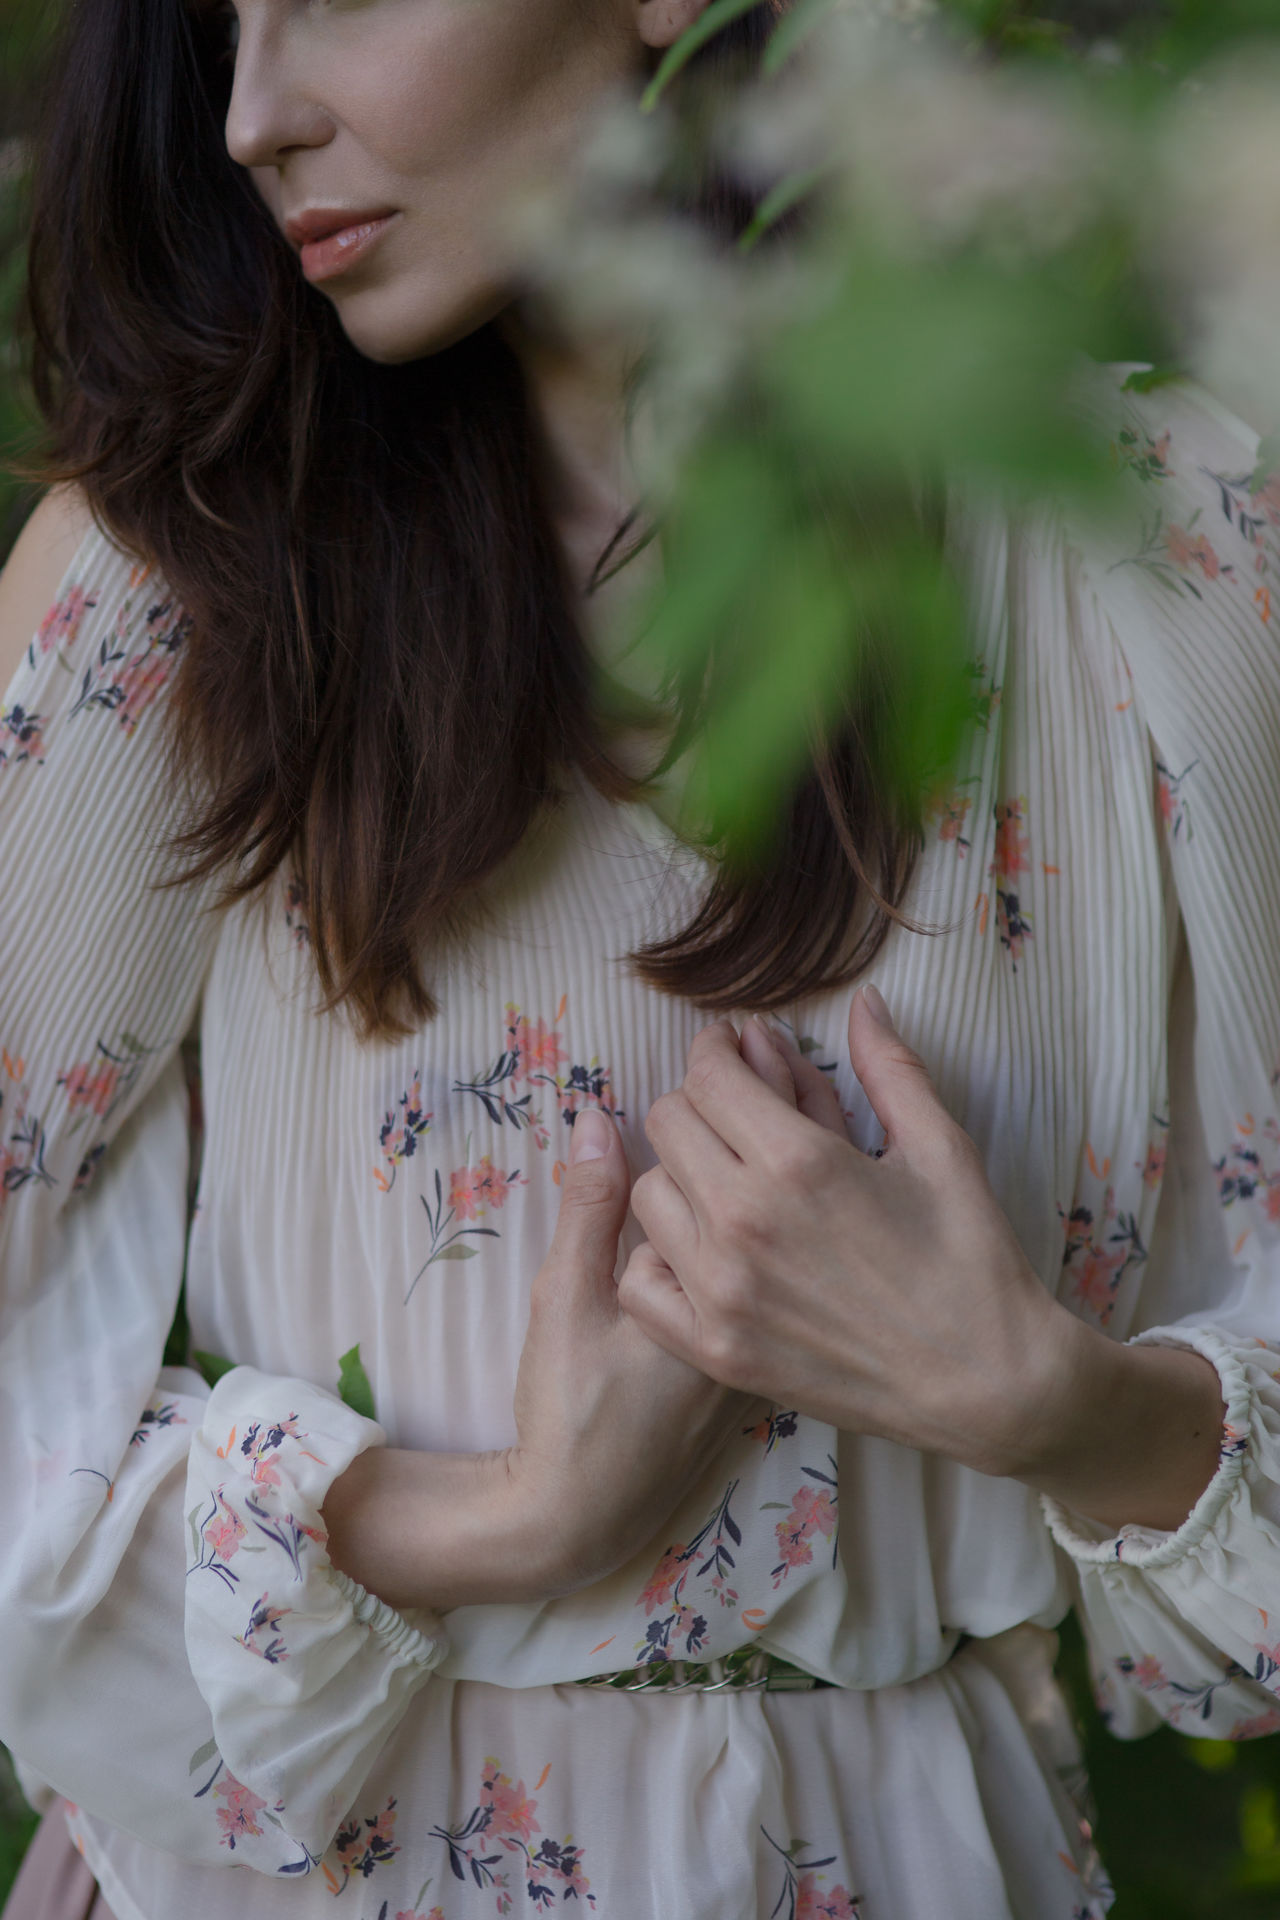 Close-up Day Dreaming Faceless Portrait Female Front View Hands Human Hand Indoors  Leisure Activity Lifestyles Midsection Midsummer Nature People Real People The Portraitist - 2017 EyeEm Awards Women Young Adult Young Women